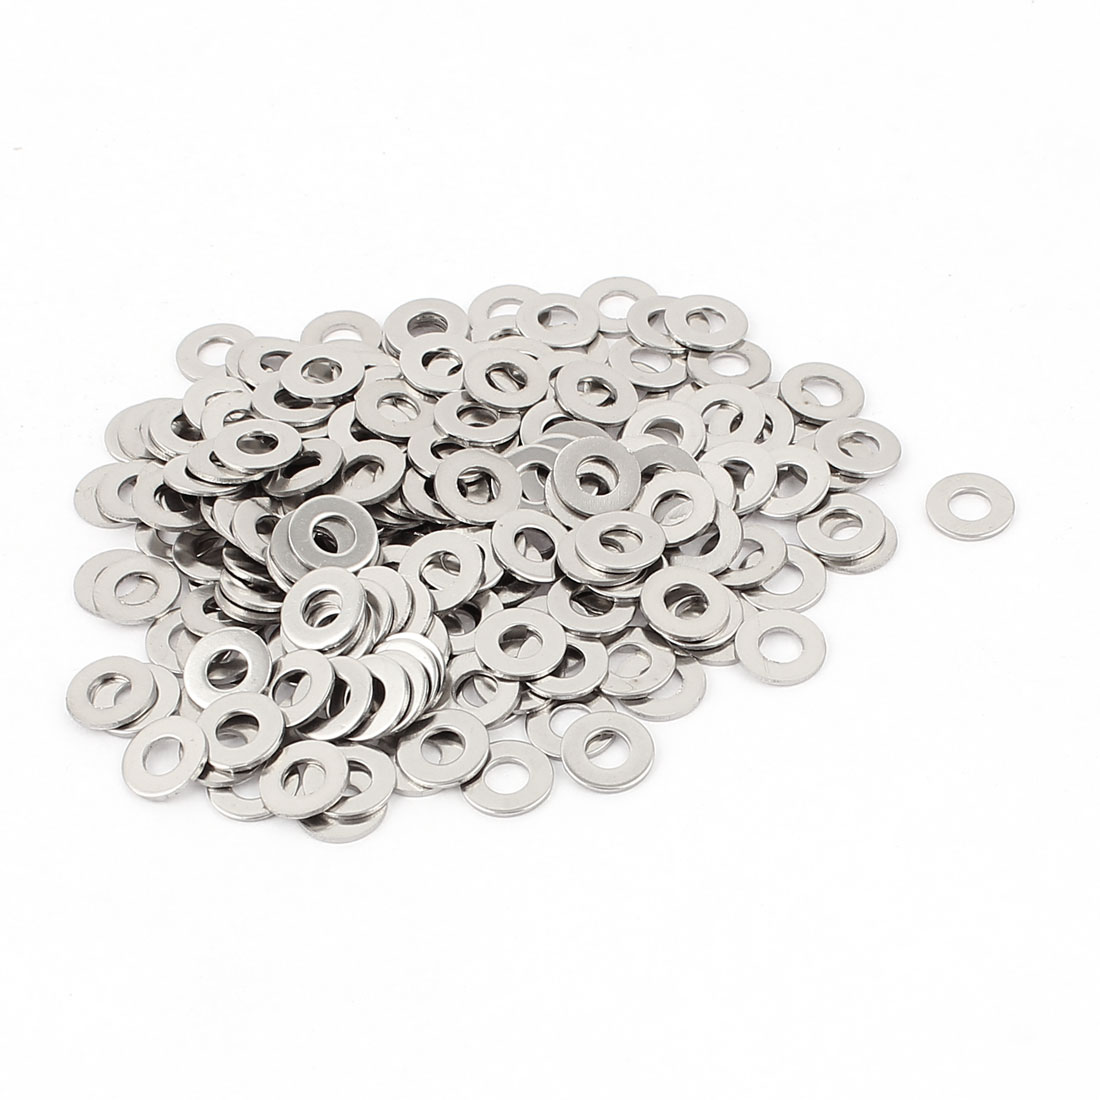 200pcs 304 Stainless Steel Plain Finish M4 Flat Washer Spacers Silver Tone